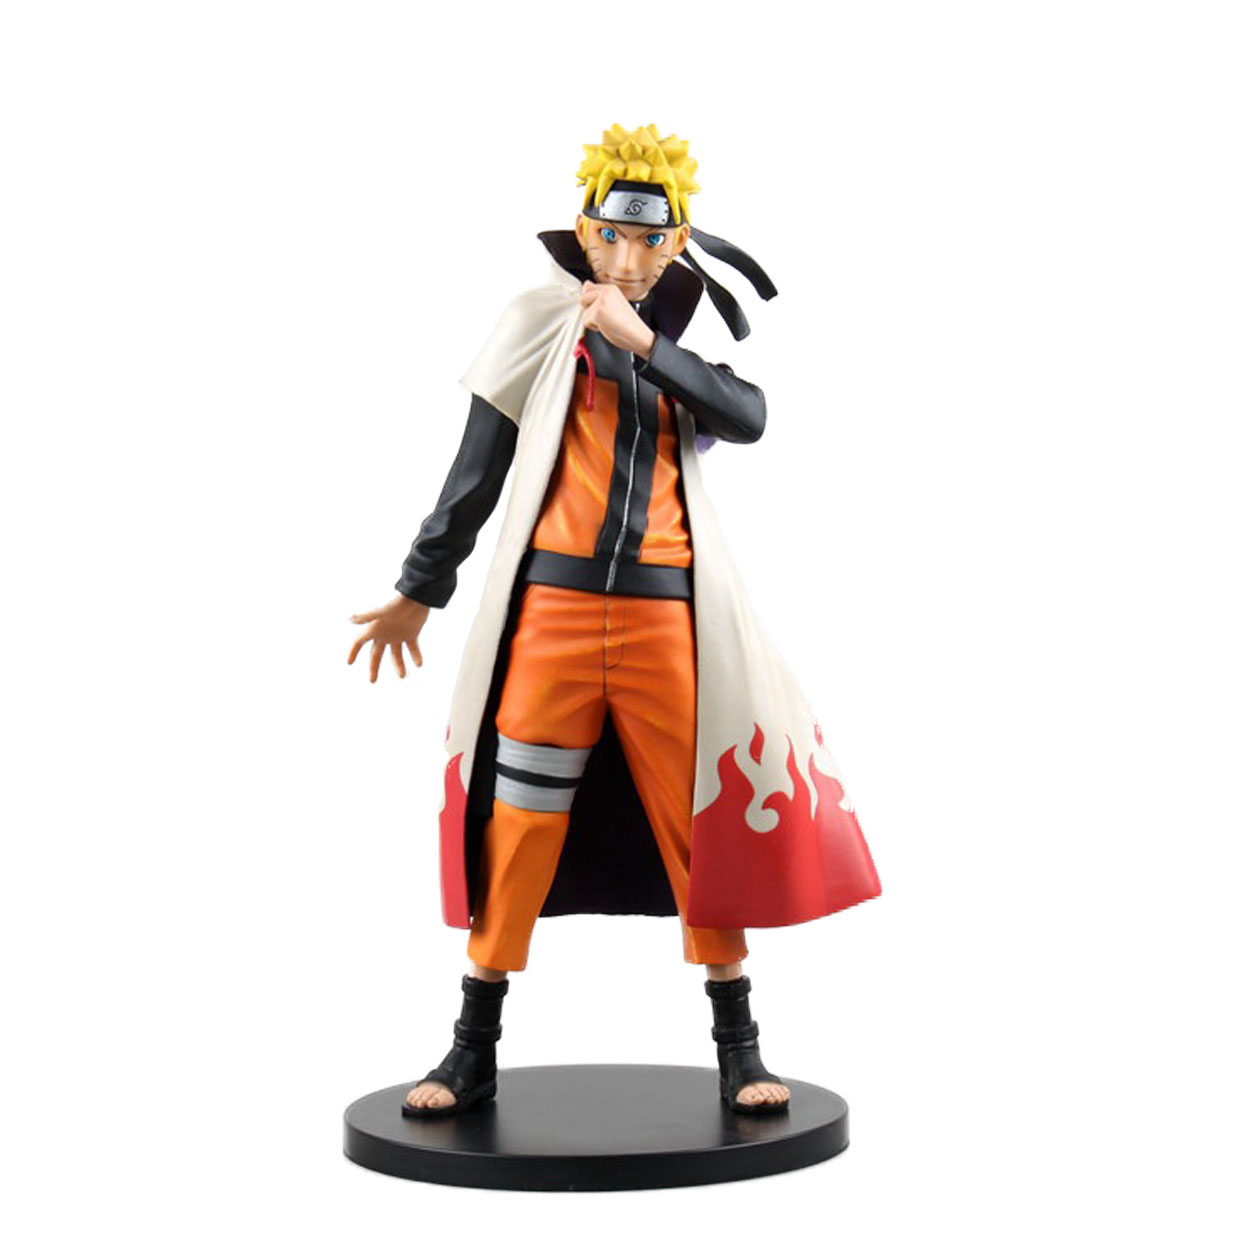 Chanycore 25CM Anime Naruto Uzumaki Naruto PVC Action Figure Collection Model Toy 1/6 Scale figure doll gift ACGN Brinquedos anime naruto brinquedos action